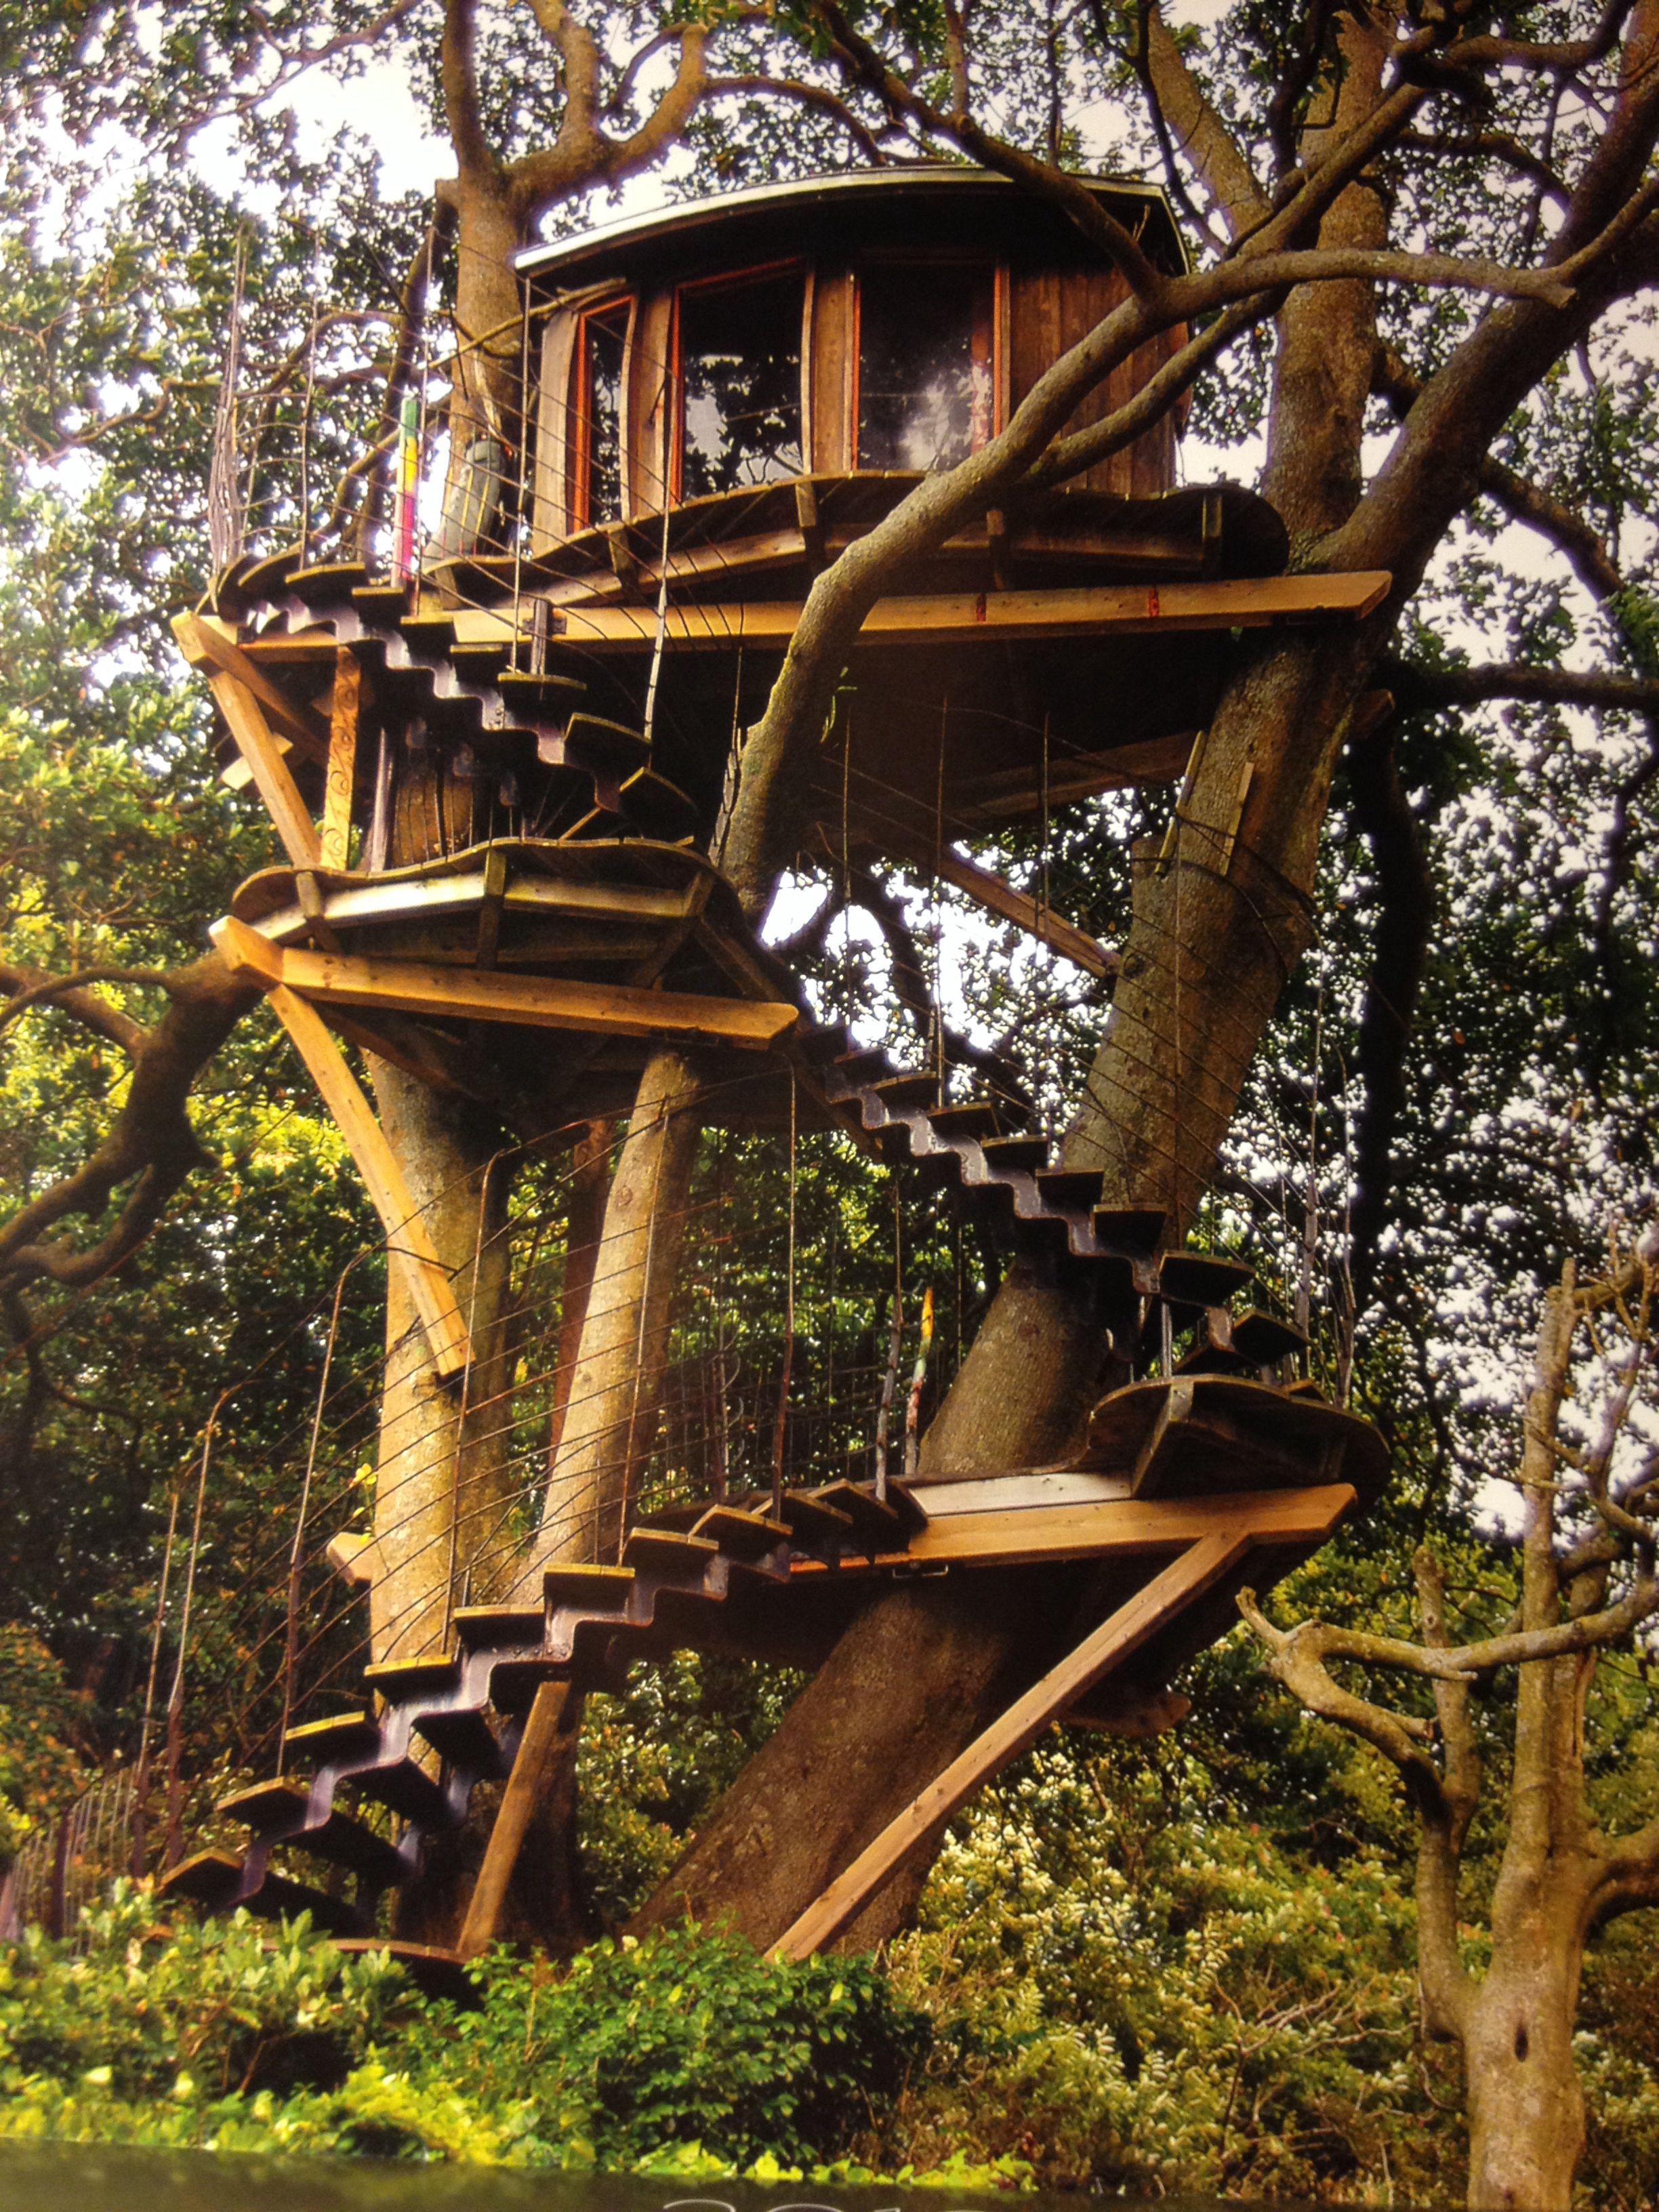 surf shack ardia,japan | tree houses | pinterest | baumhaus, Gartengerate ideen